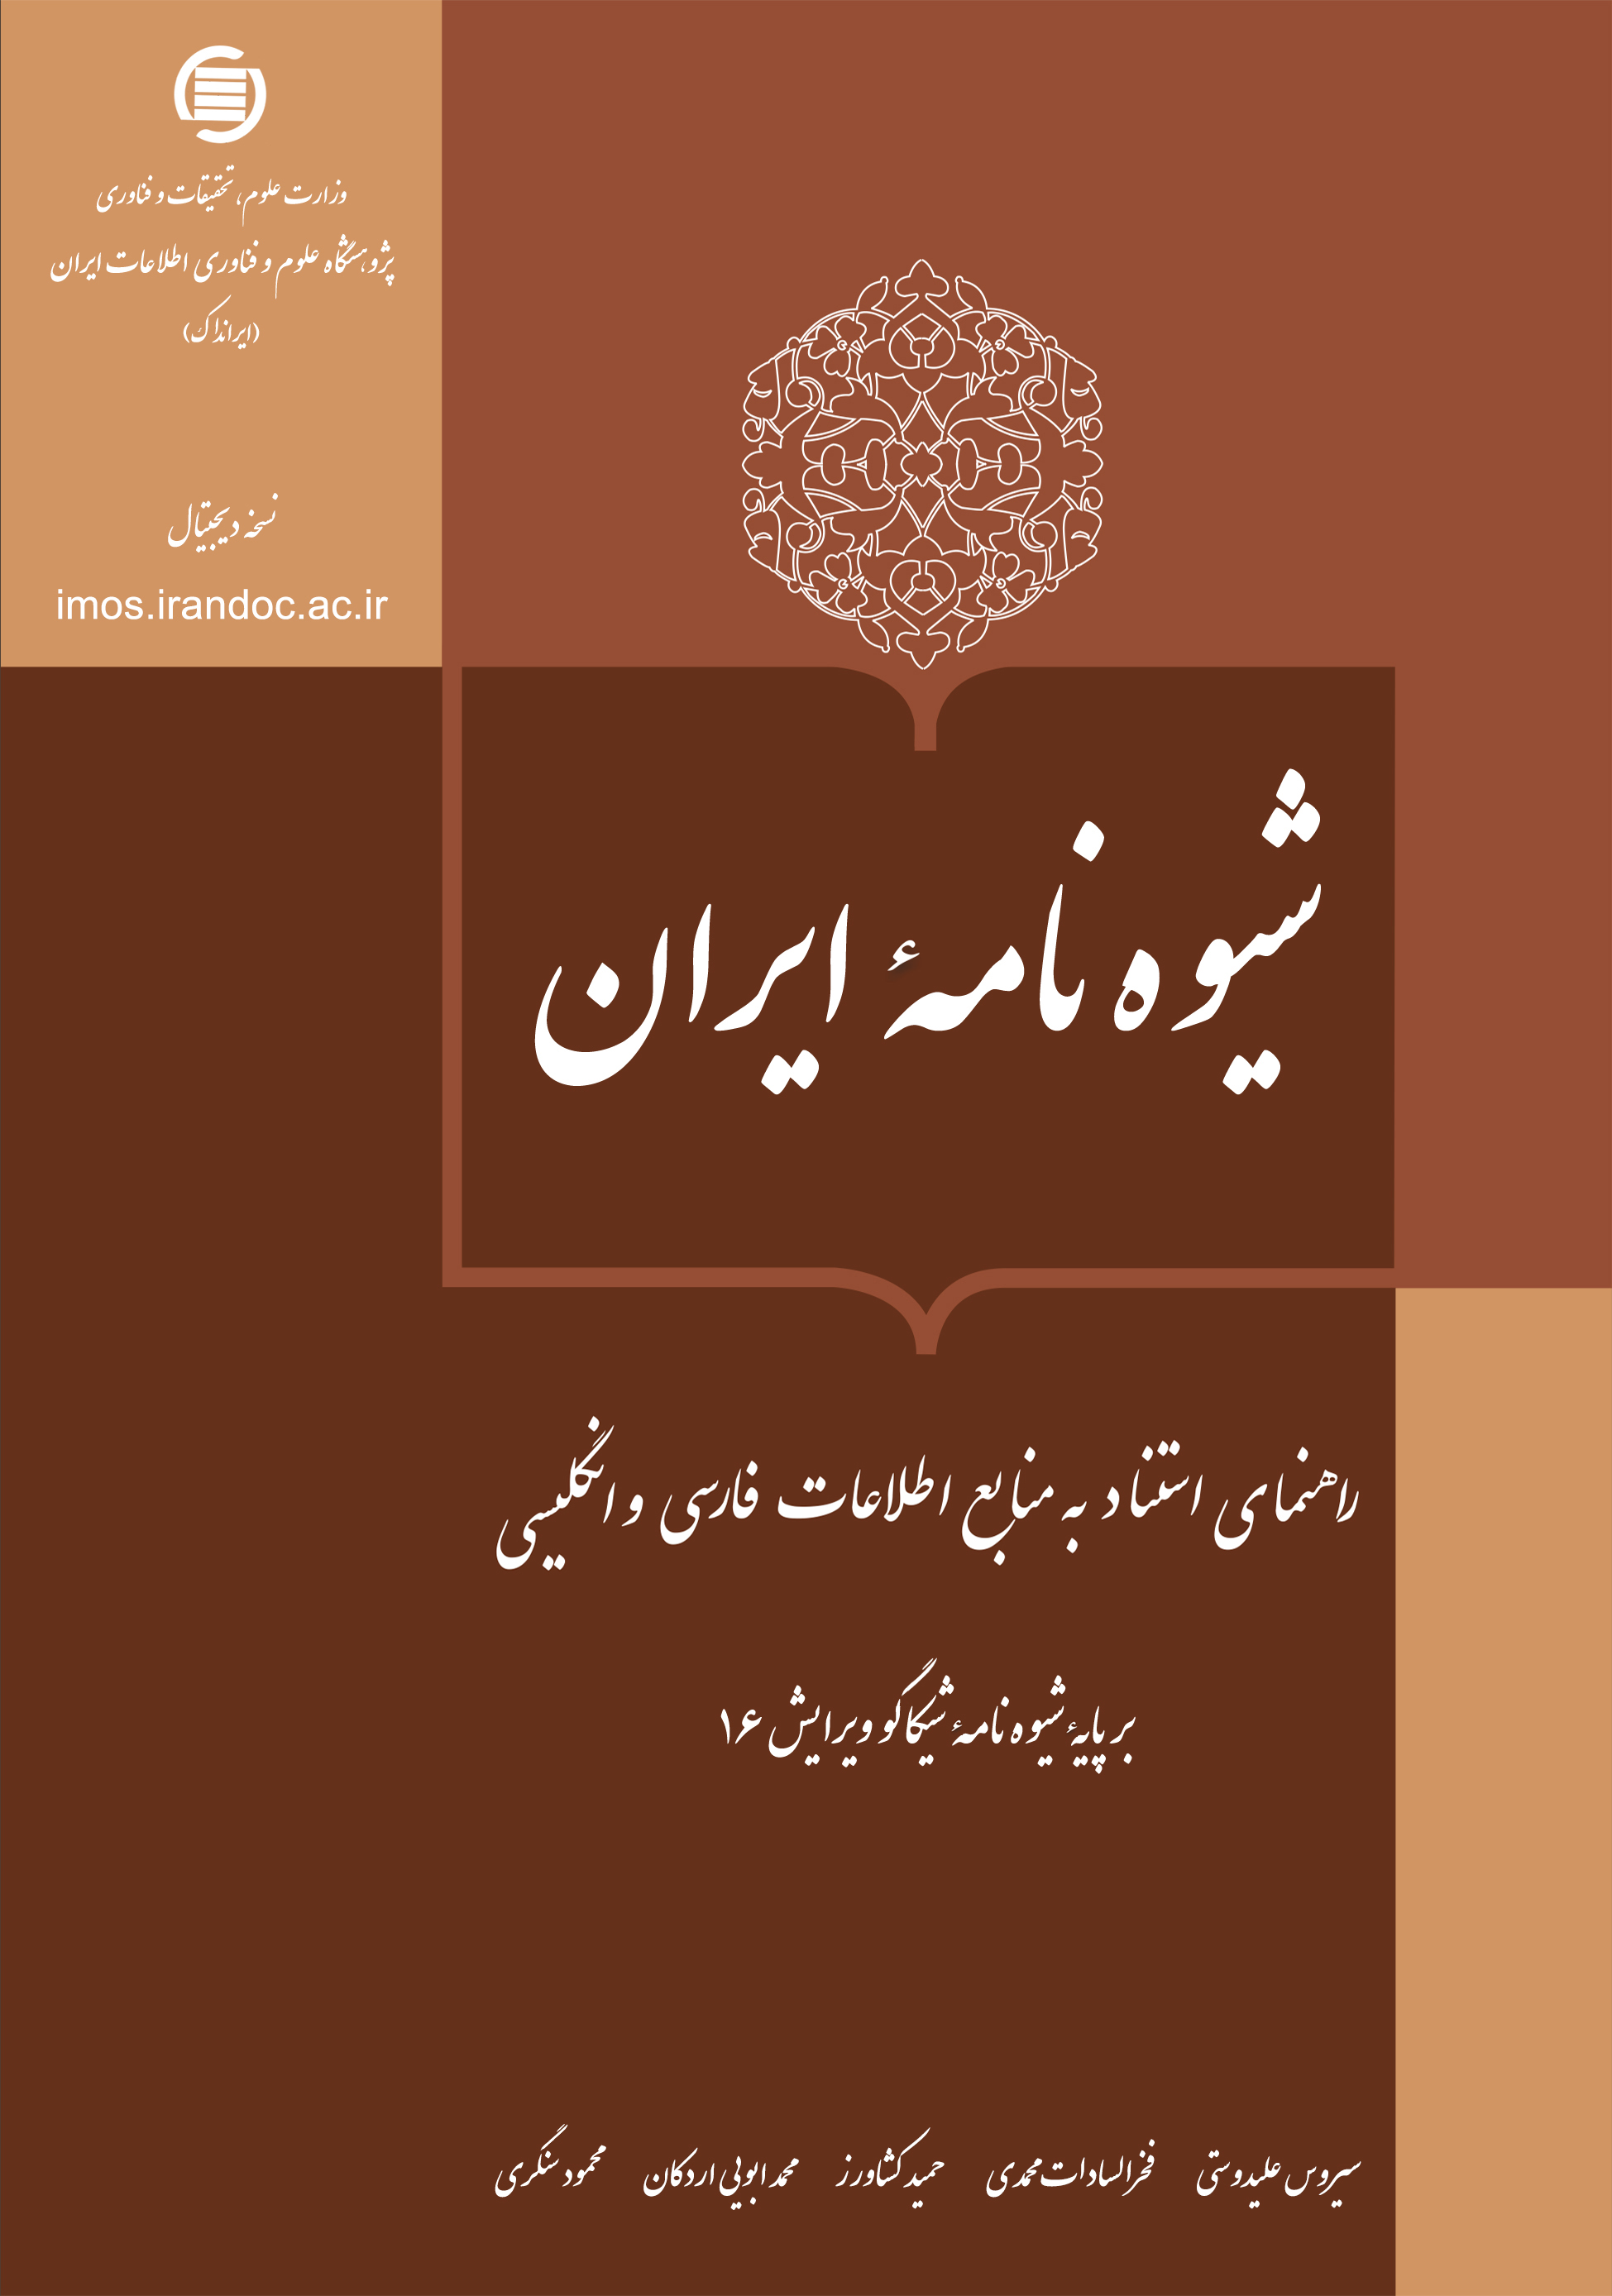 Iran Manual of Style: Citation Guide to Persian and English Information Sources Based on the Chicago Manual of Style 16th ed.